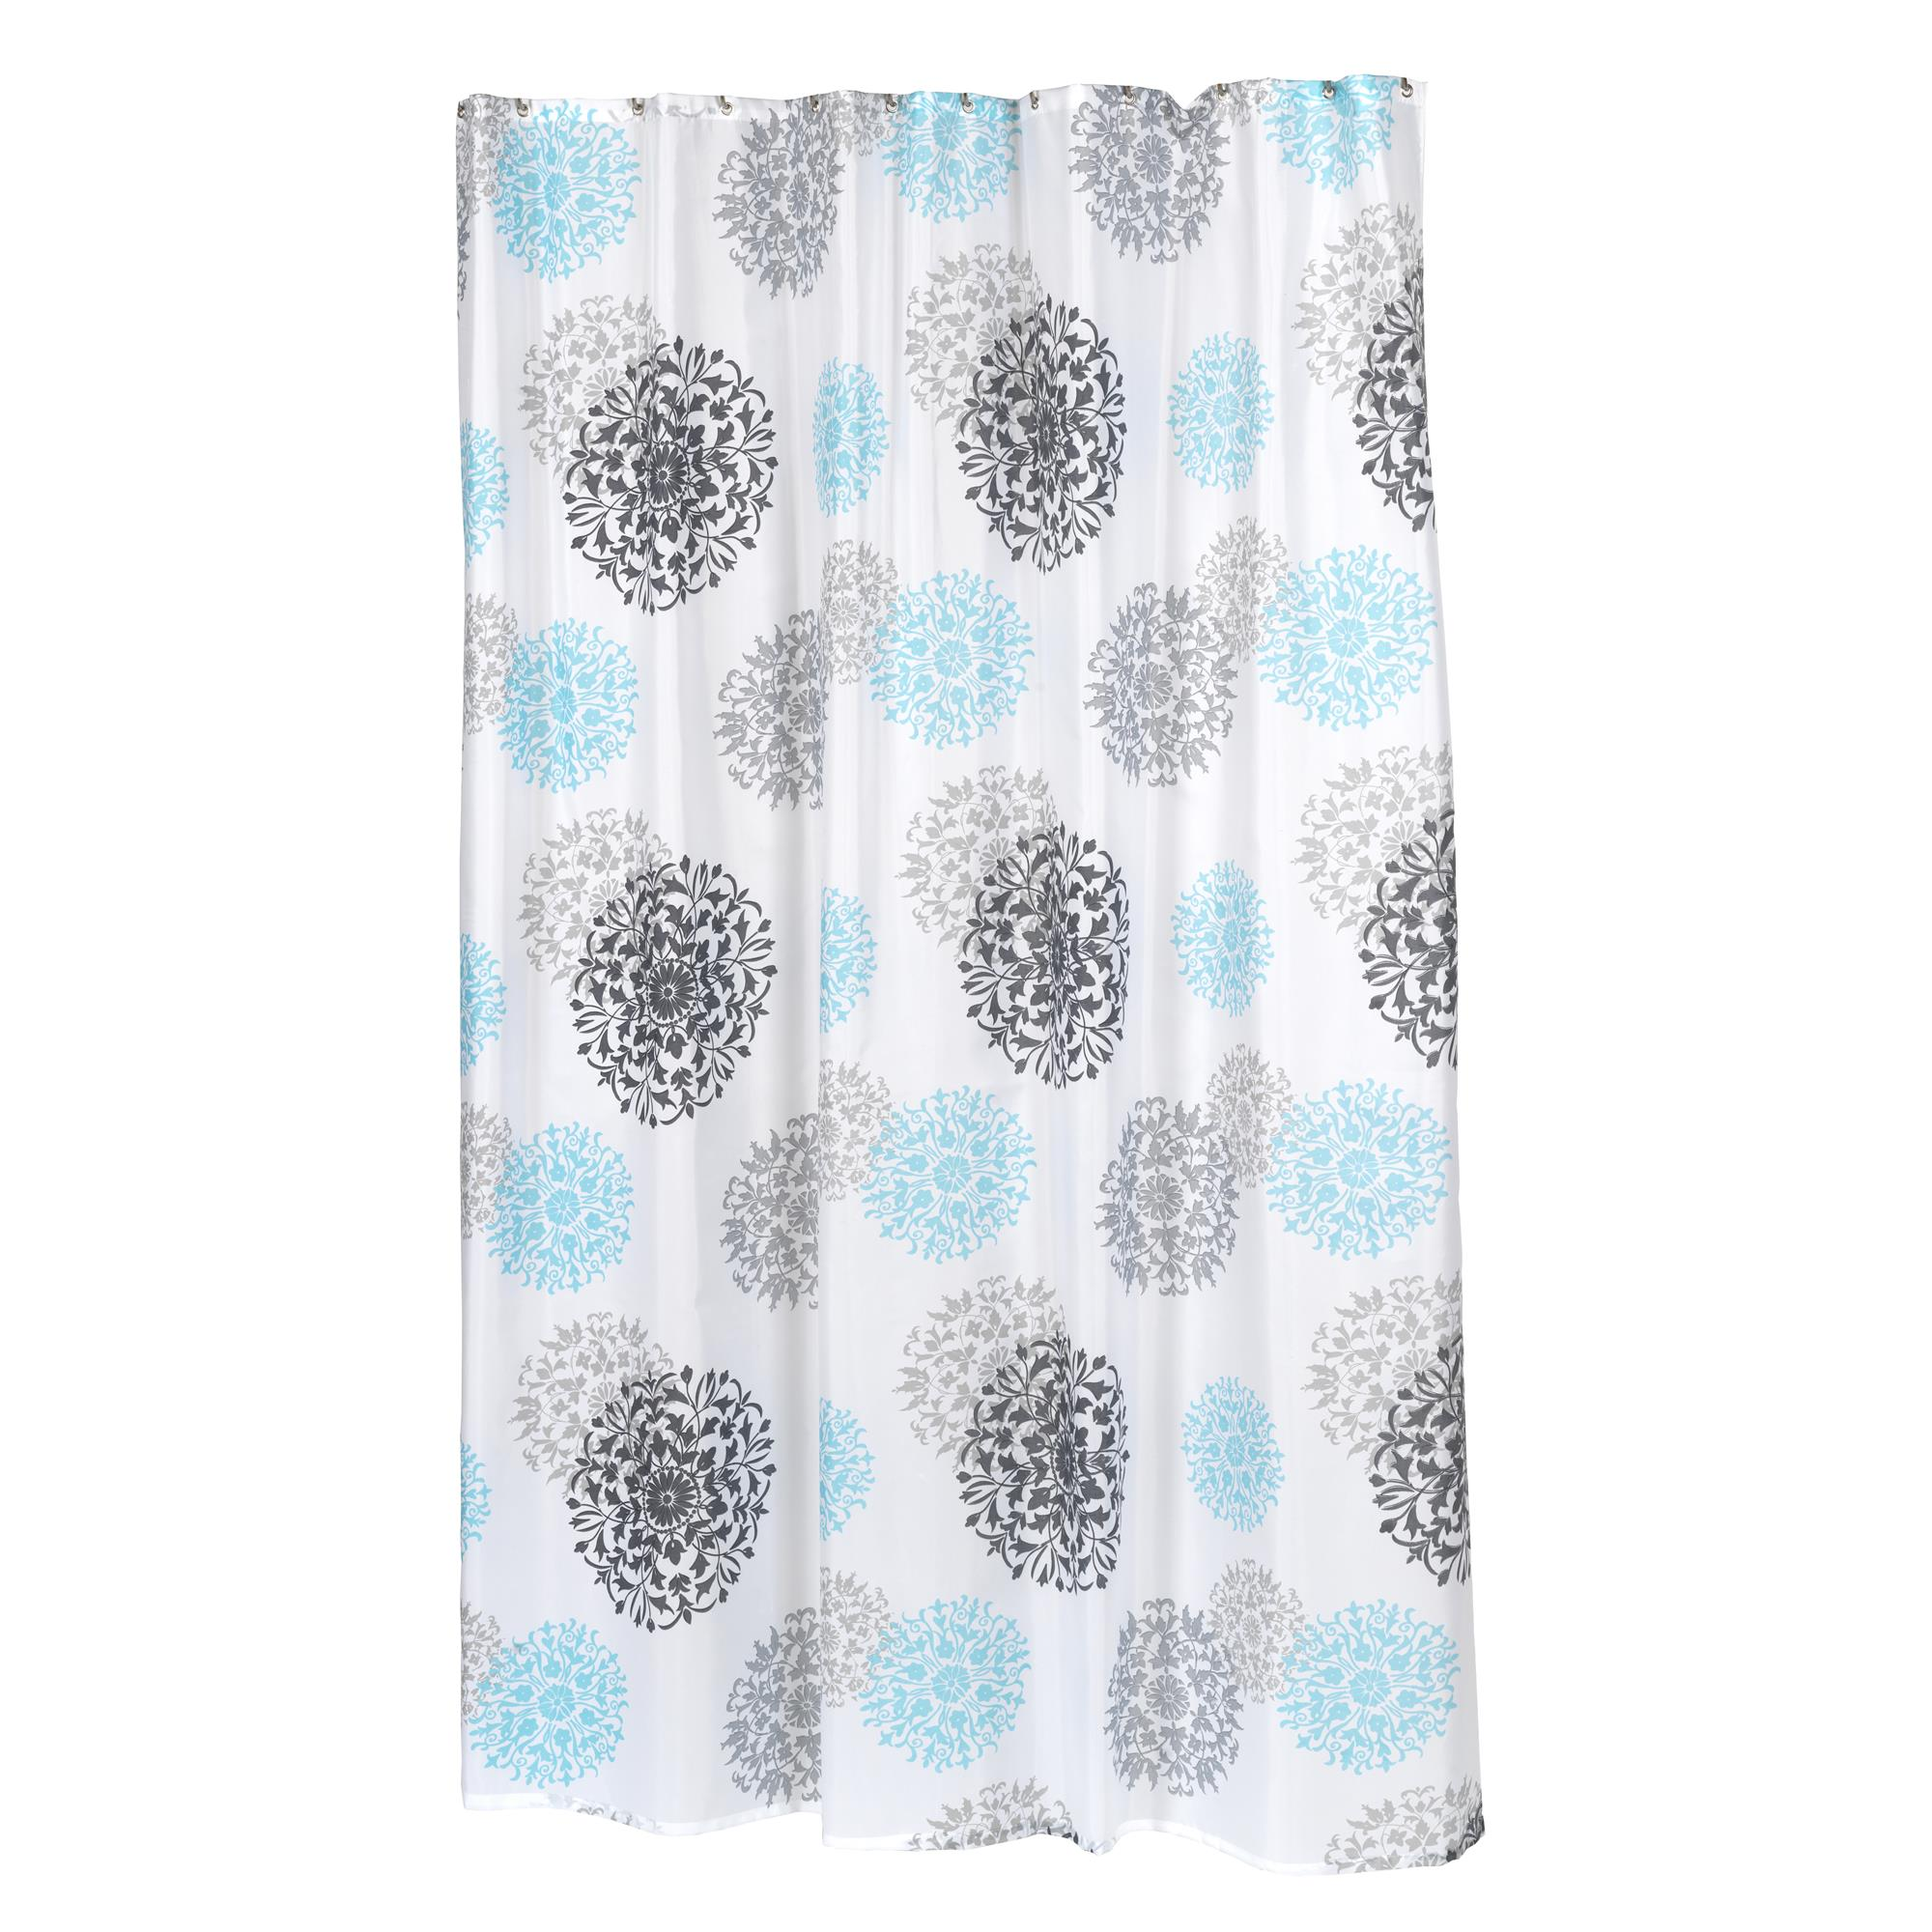 Details About Carnation Home Extra Long Isabella Fabric Shower Curtain